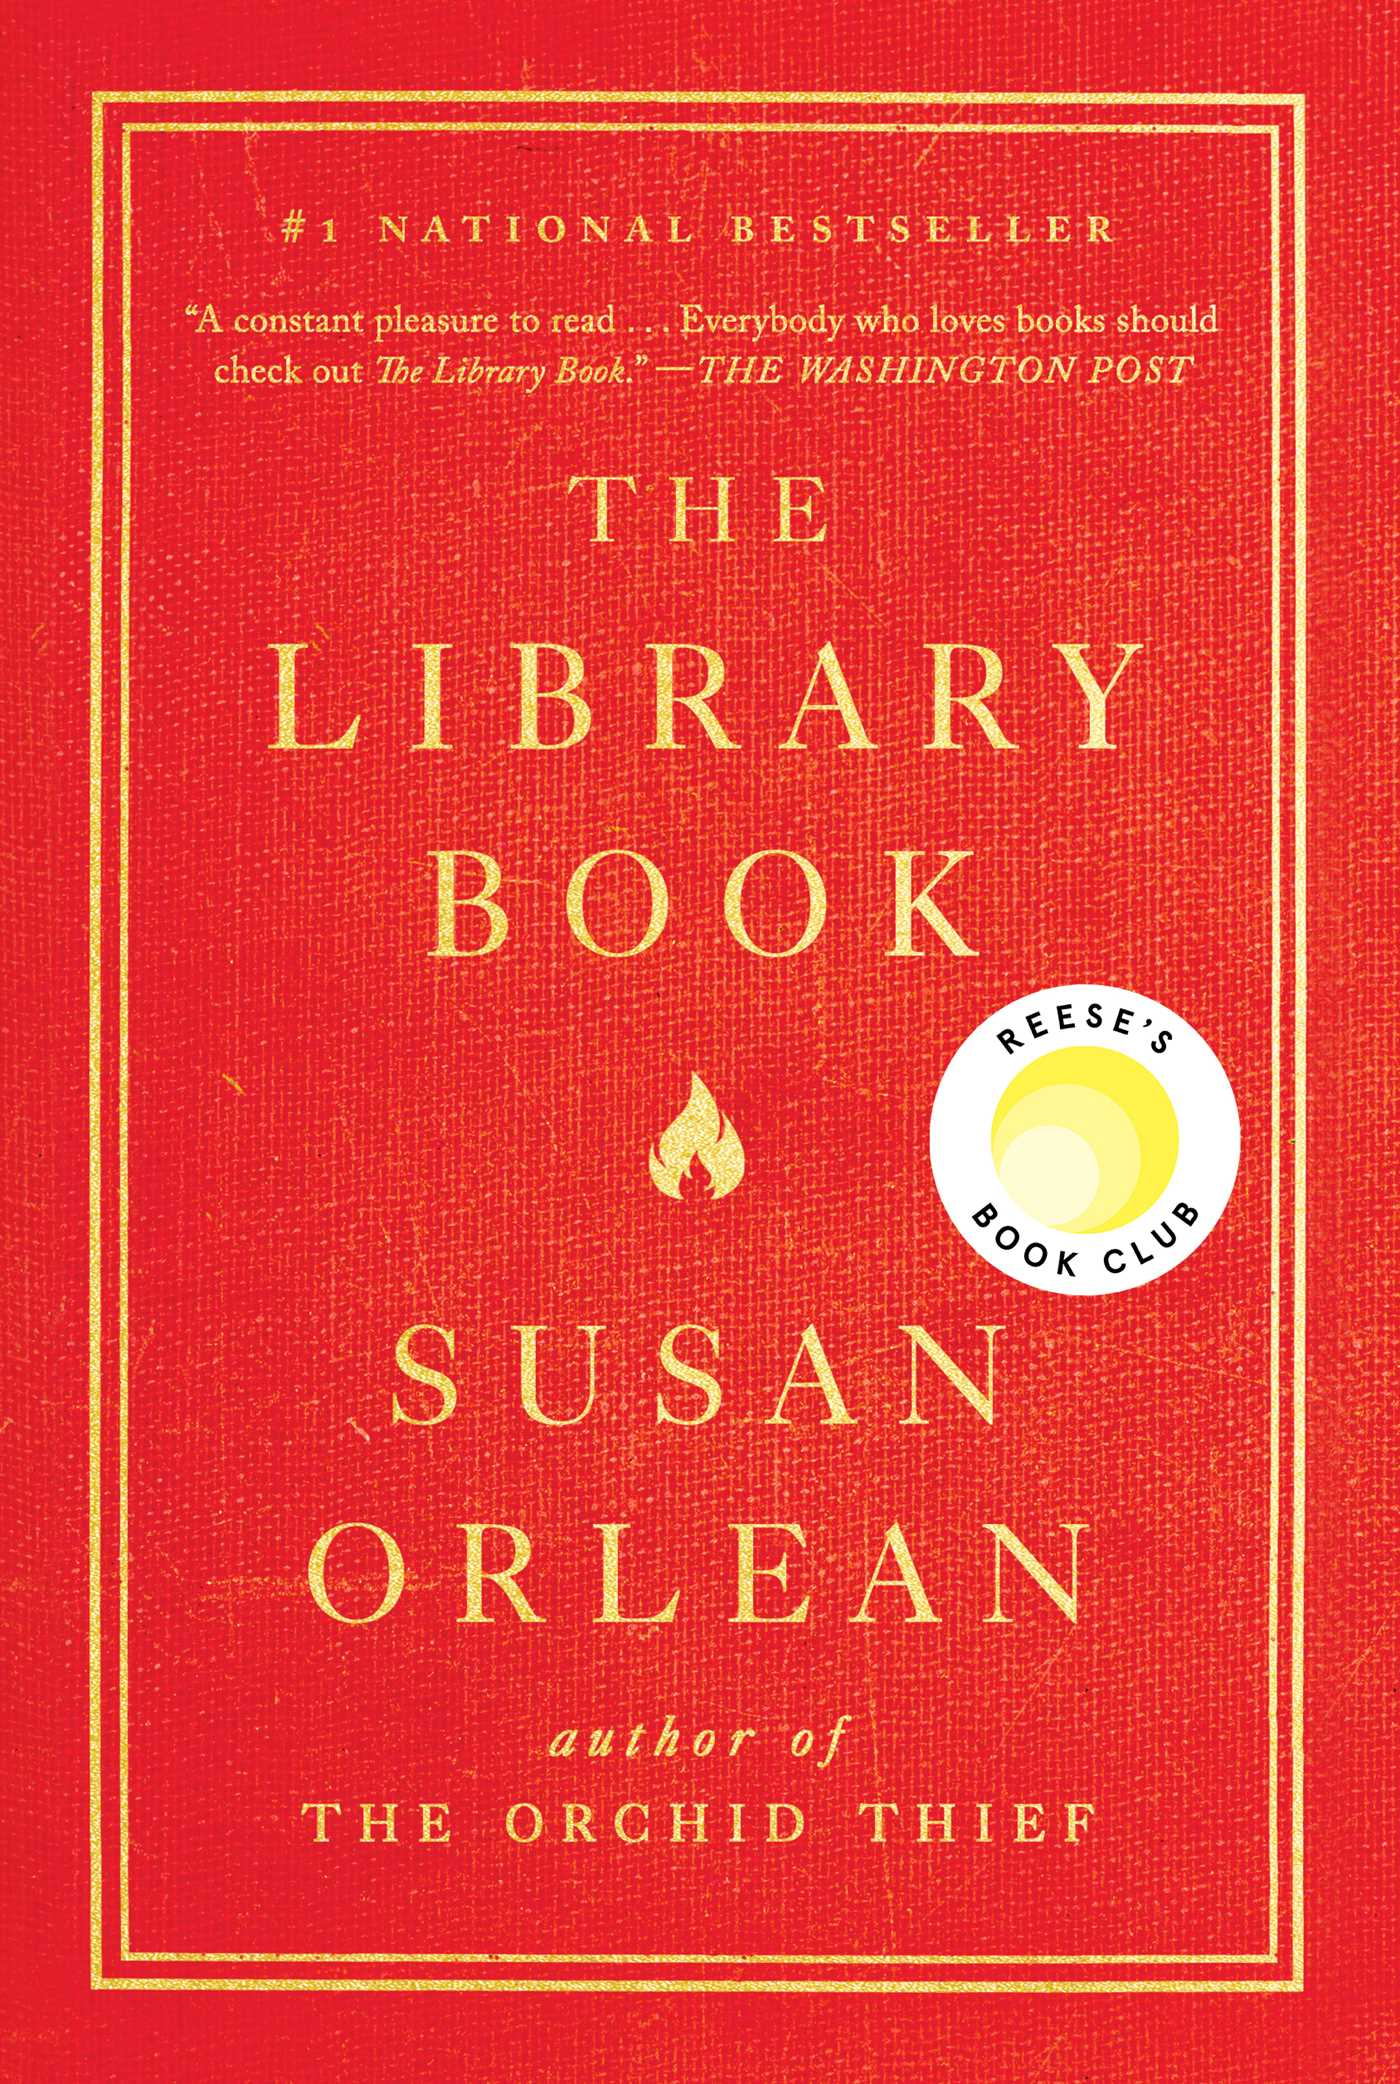 'The Library Book' by Susan Orlean book discussion